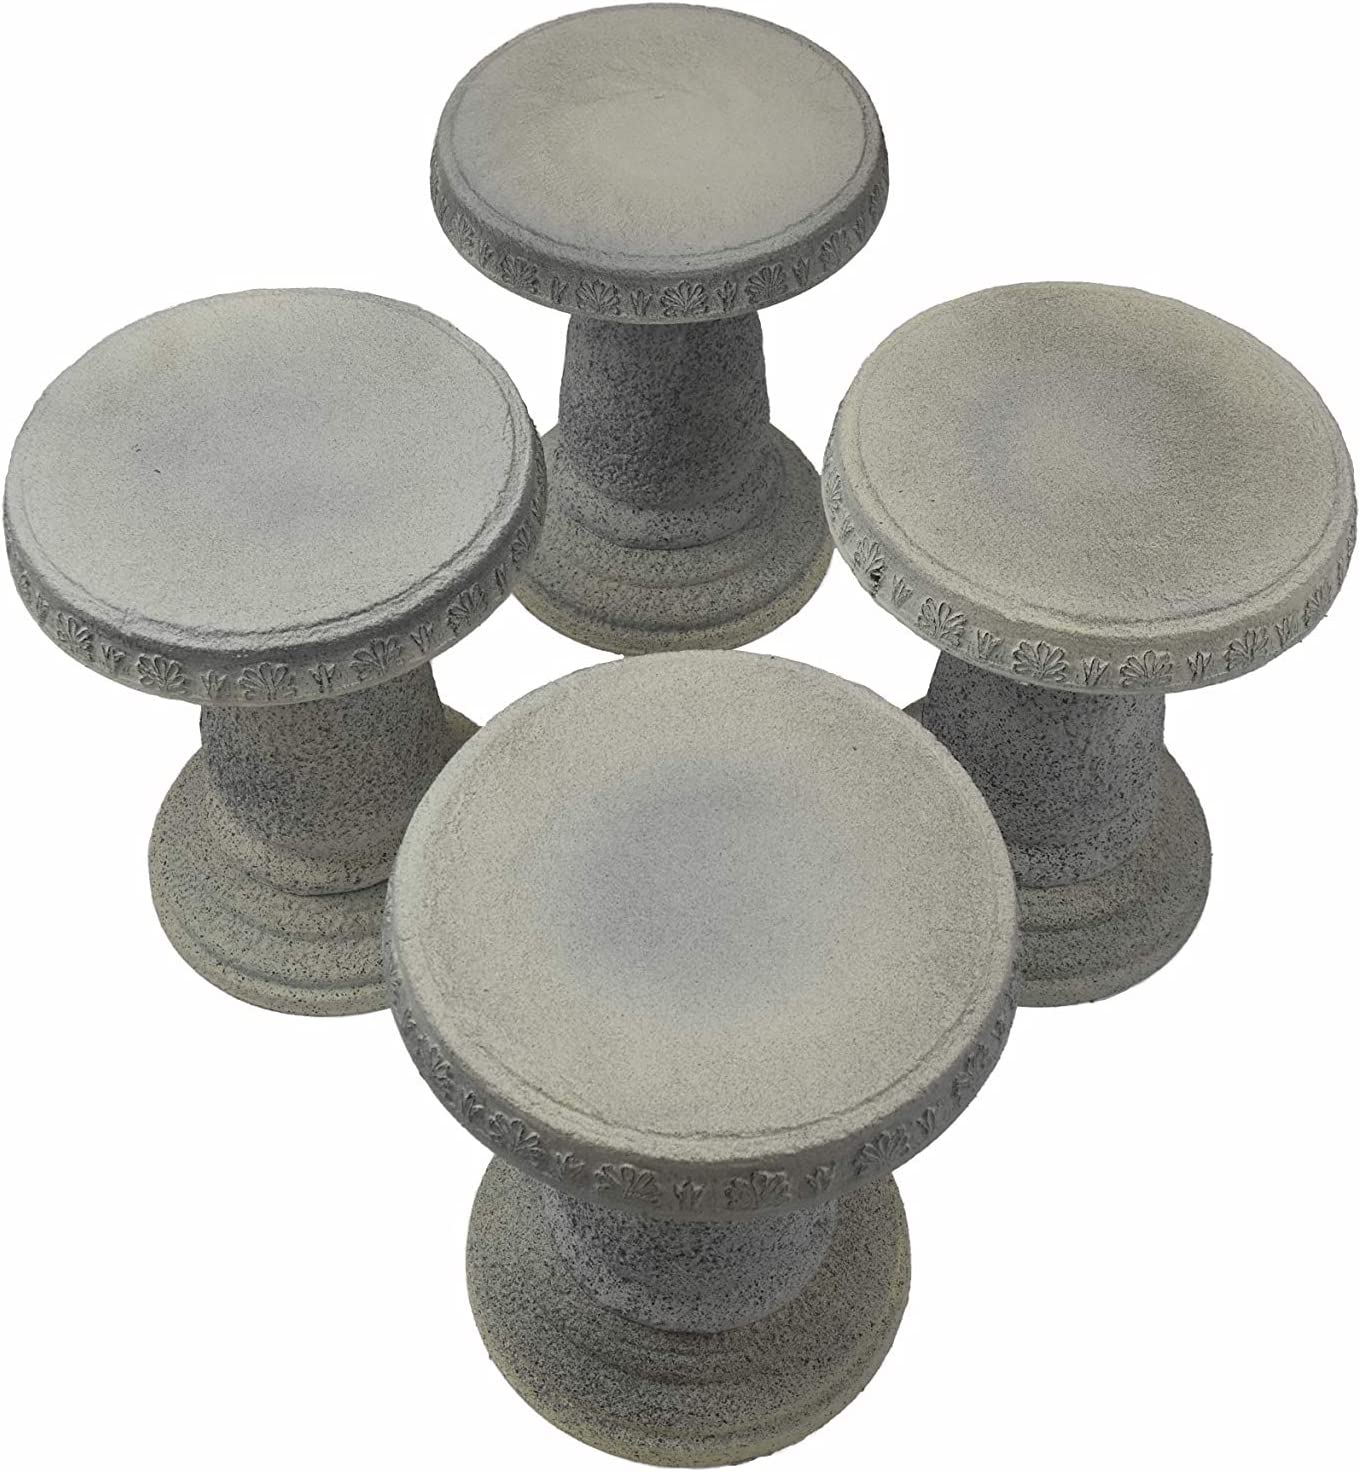 Exaco Trading Company FM-816 Exaco Patio Mushroom Style Stools Set of 4, Distressed Sandstone